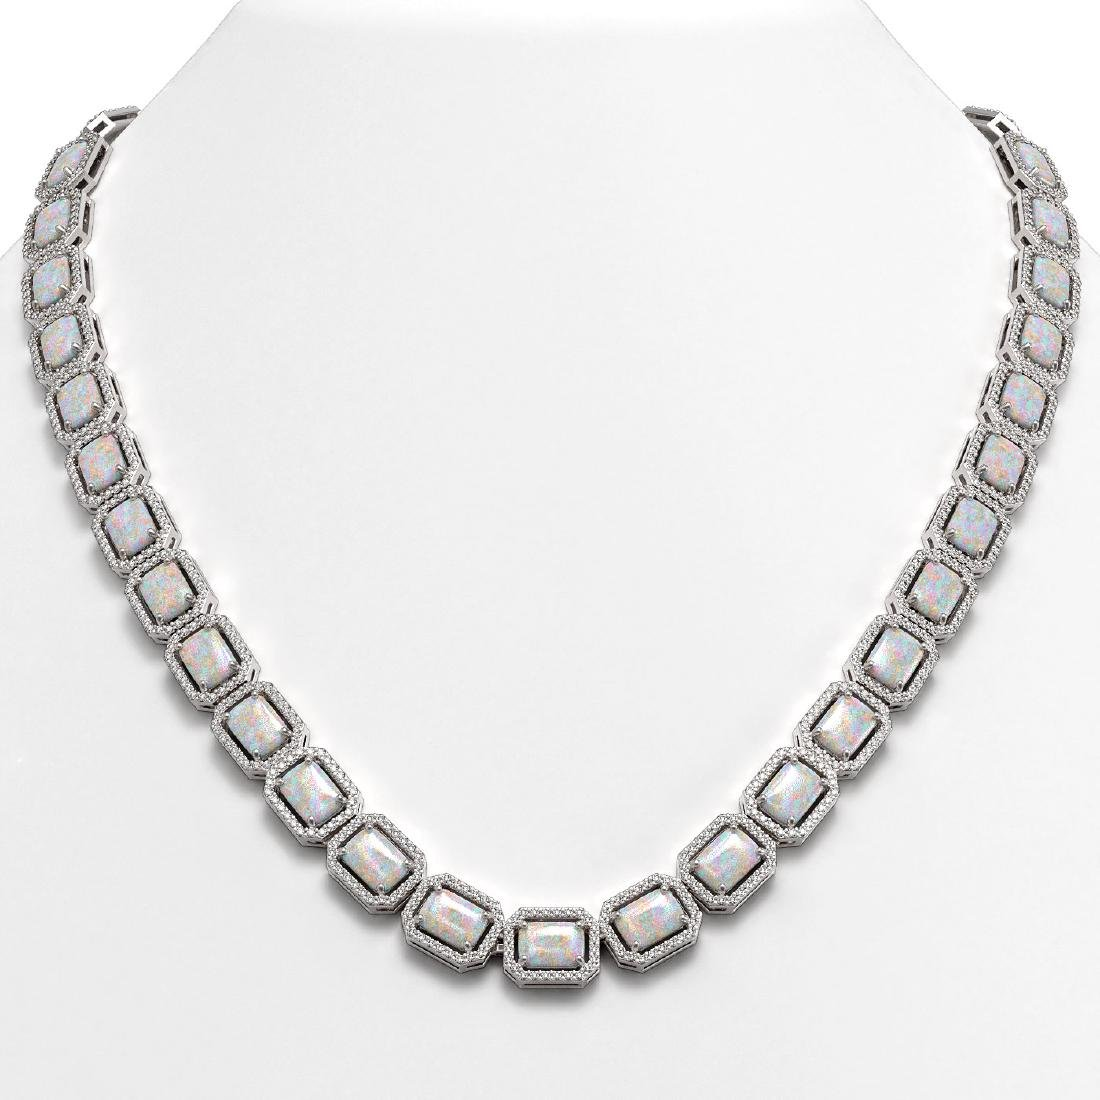 37.69 CTW Opal & Diamond Halo Necklace 10K White Gold